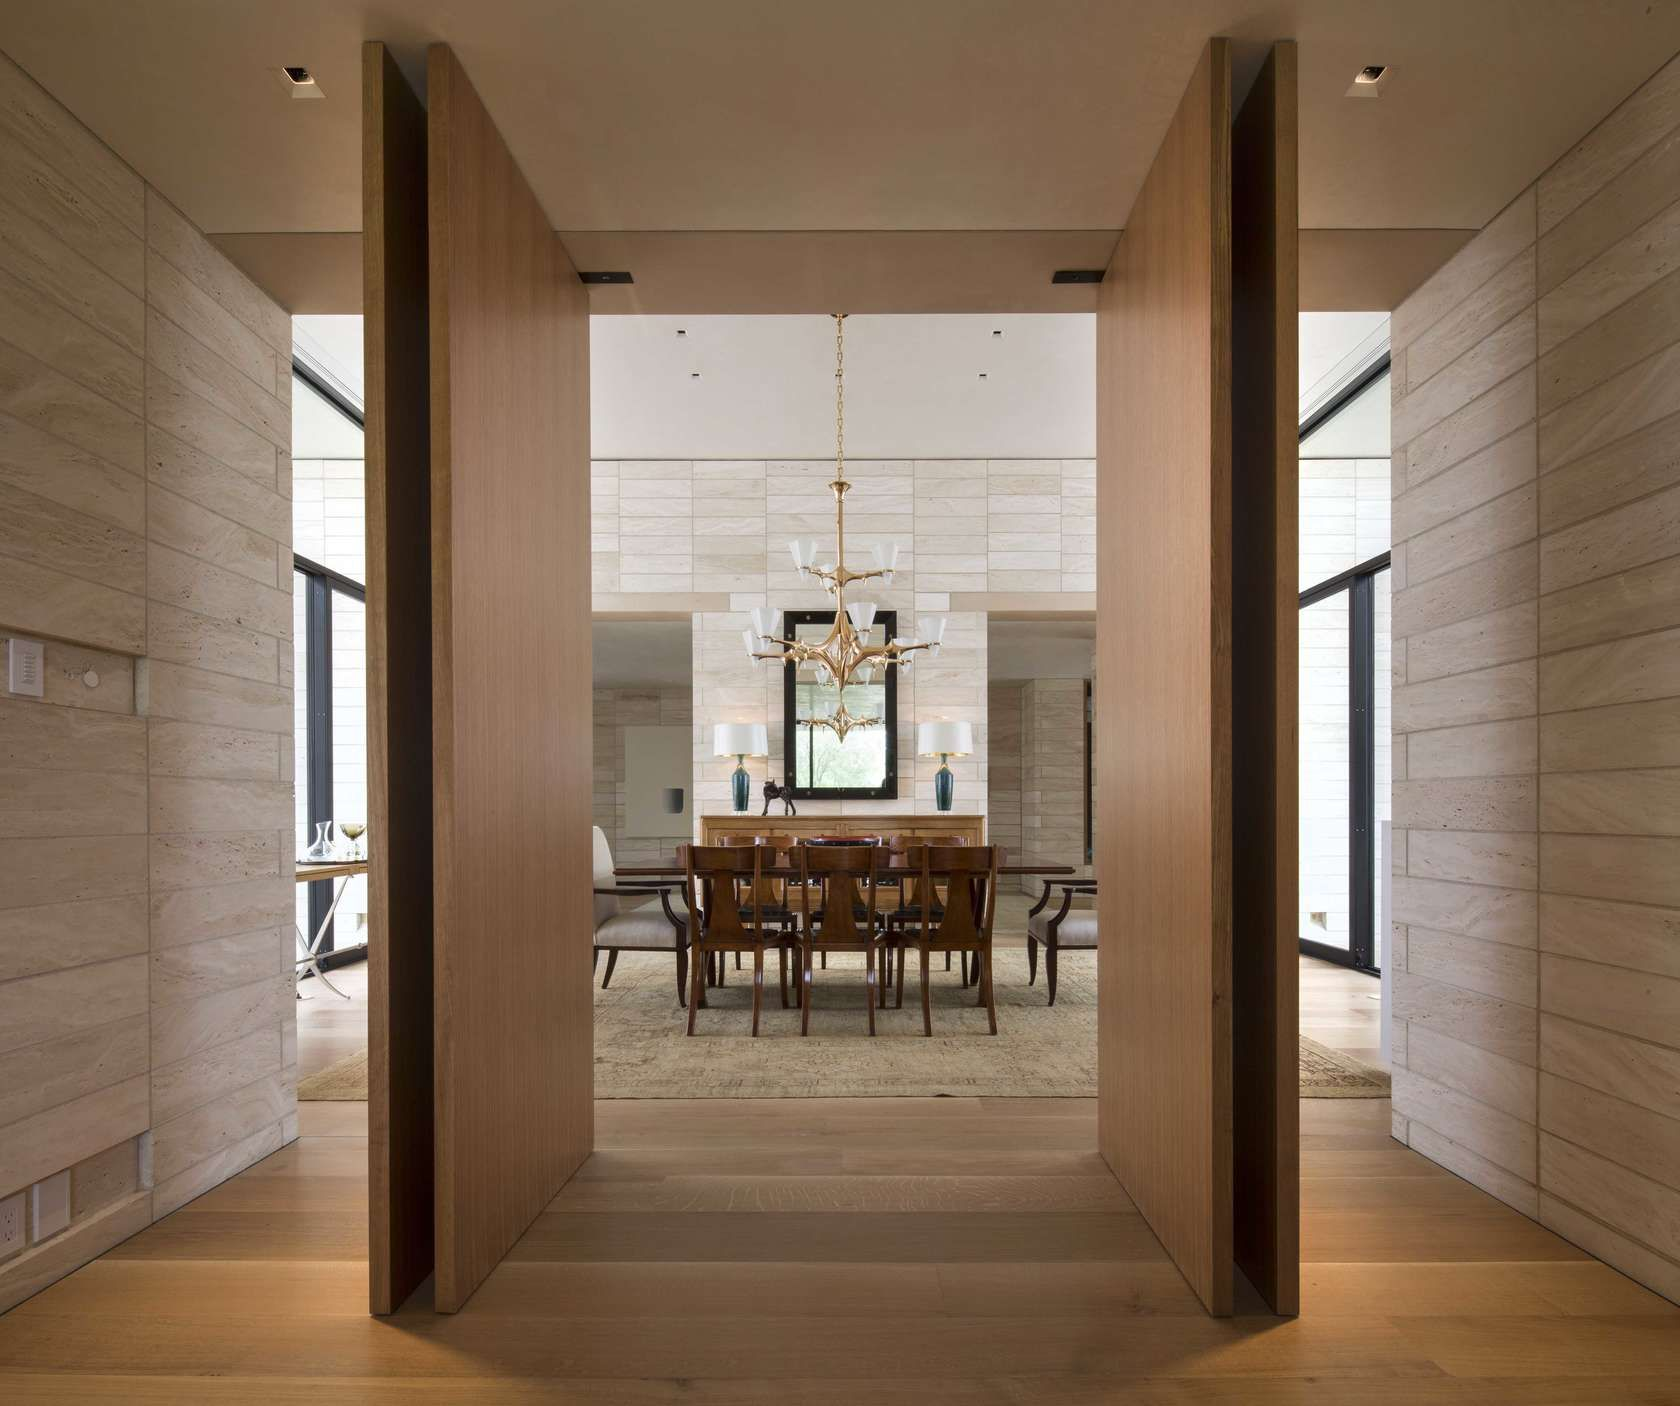 The house is defined by uu stacked lime stone walls that